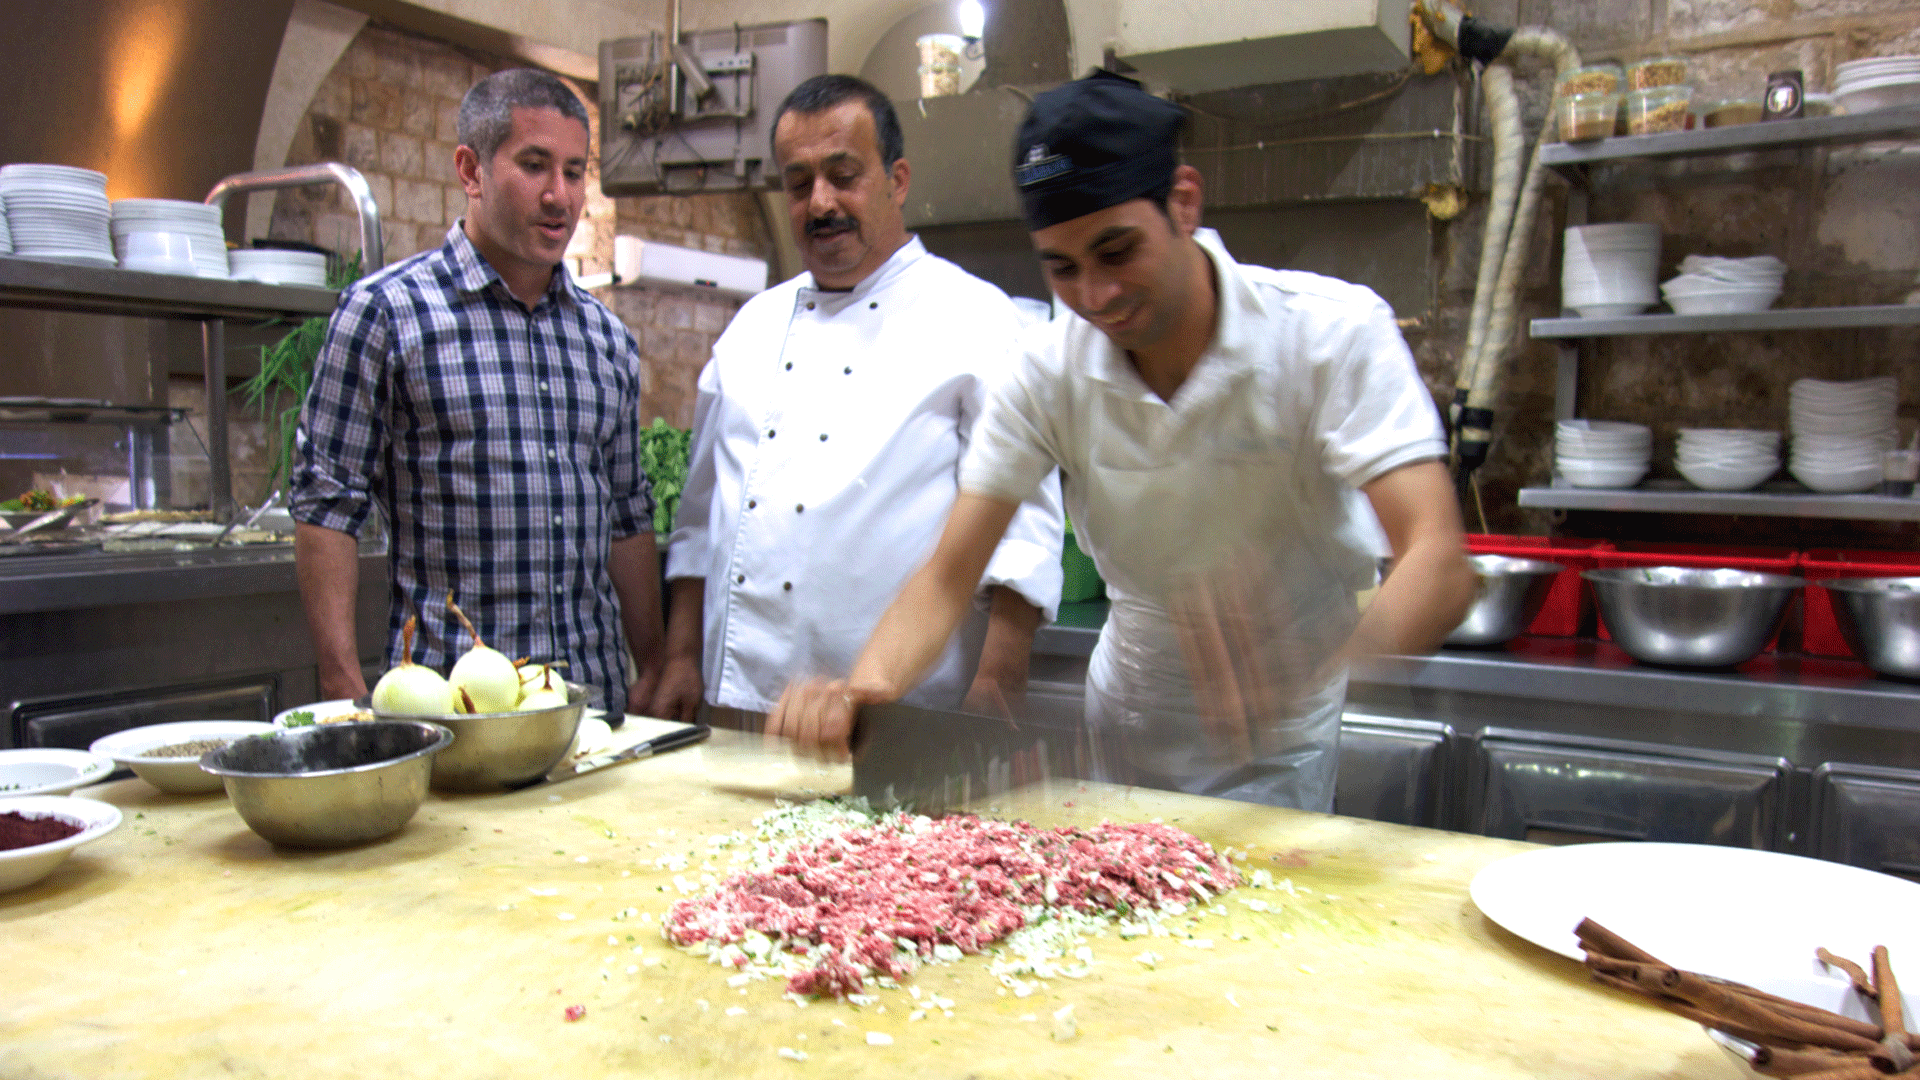 Still image from In Search of Israeli Cuisine